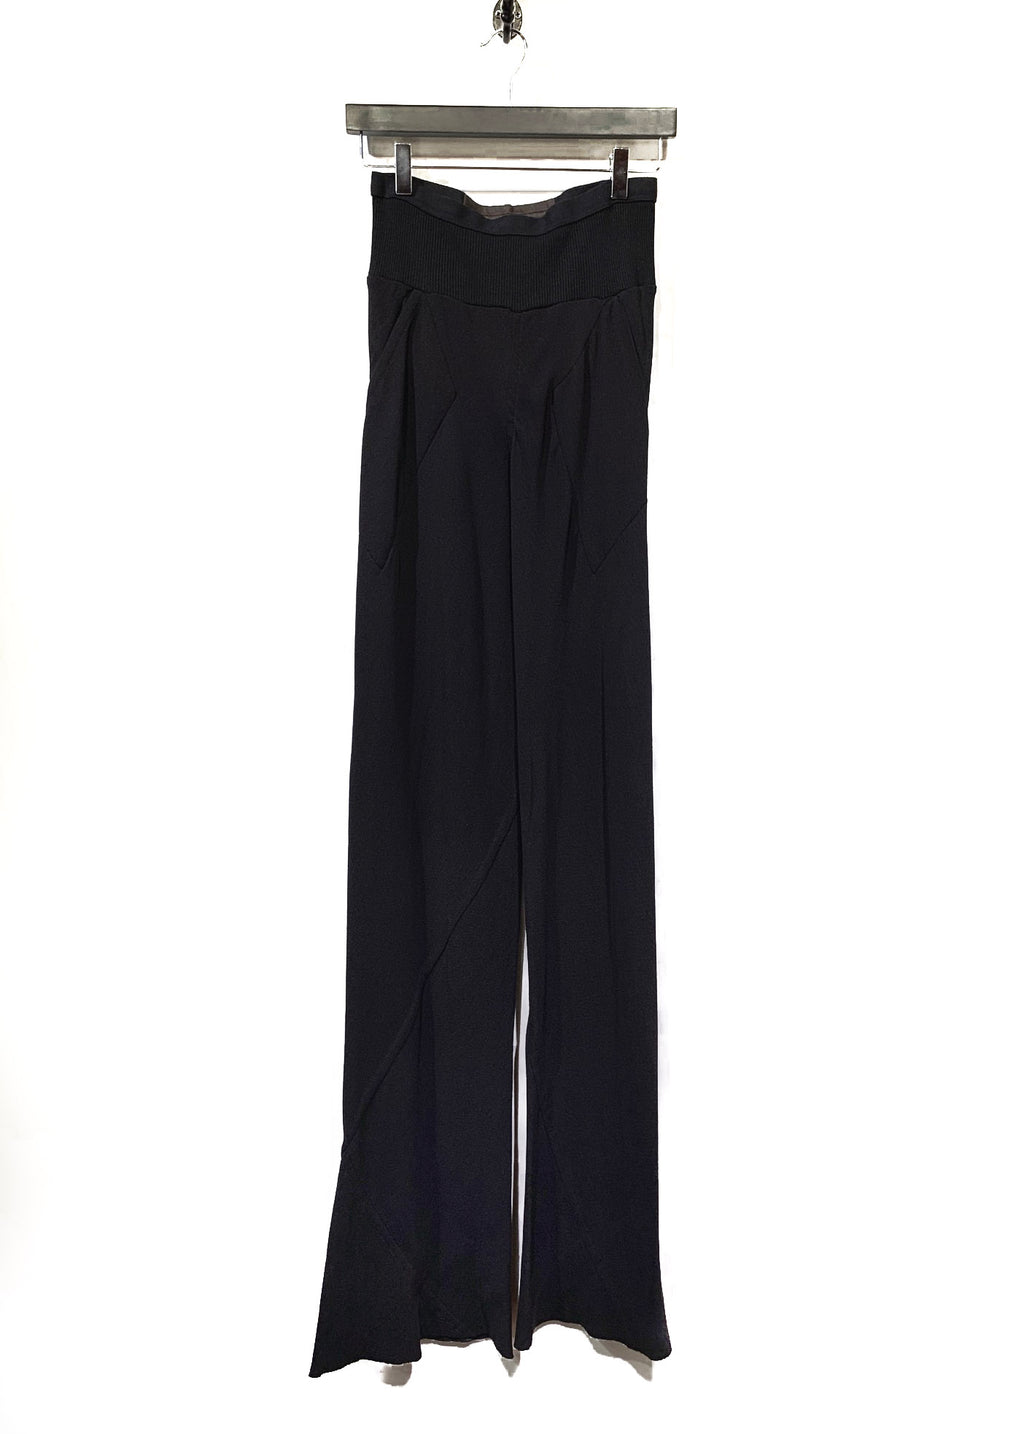 Rick Owens Black Silk High Waist Flare Trousers